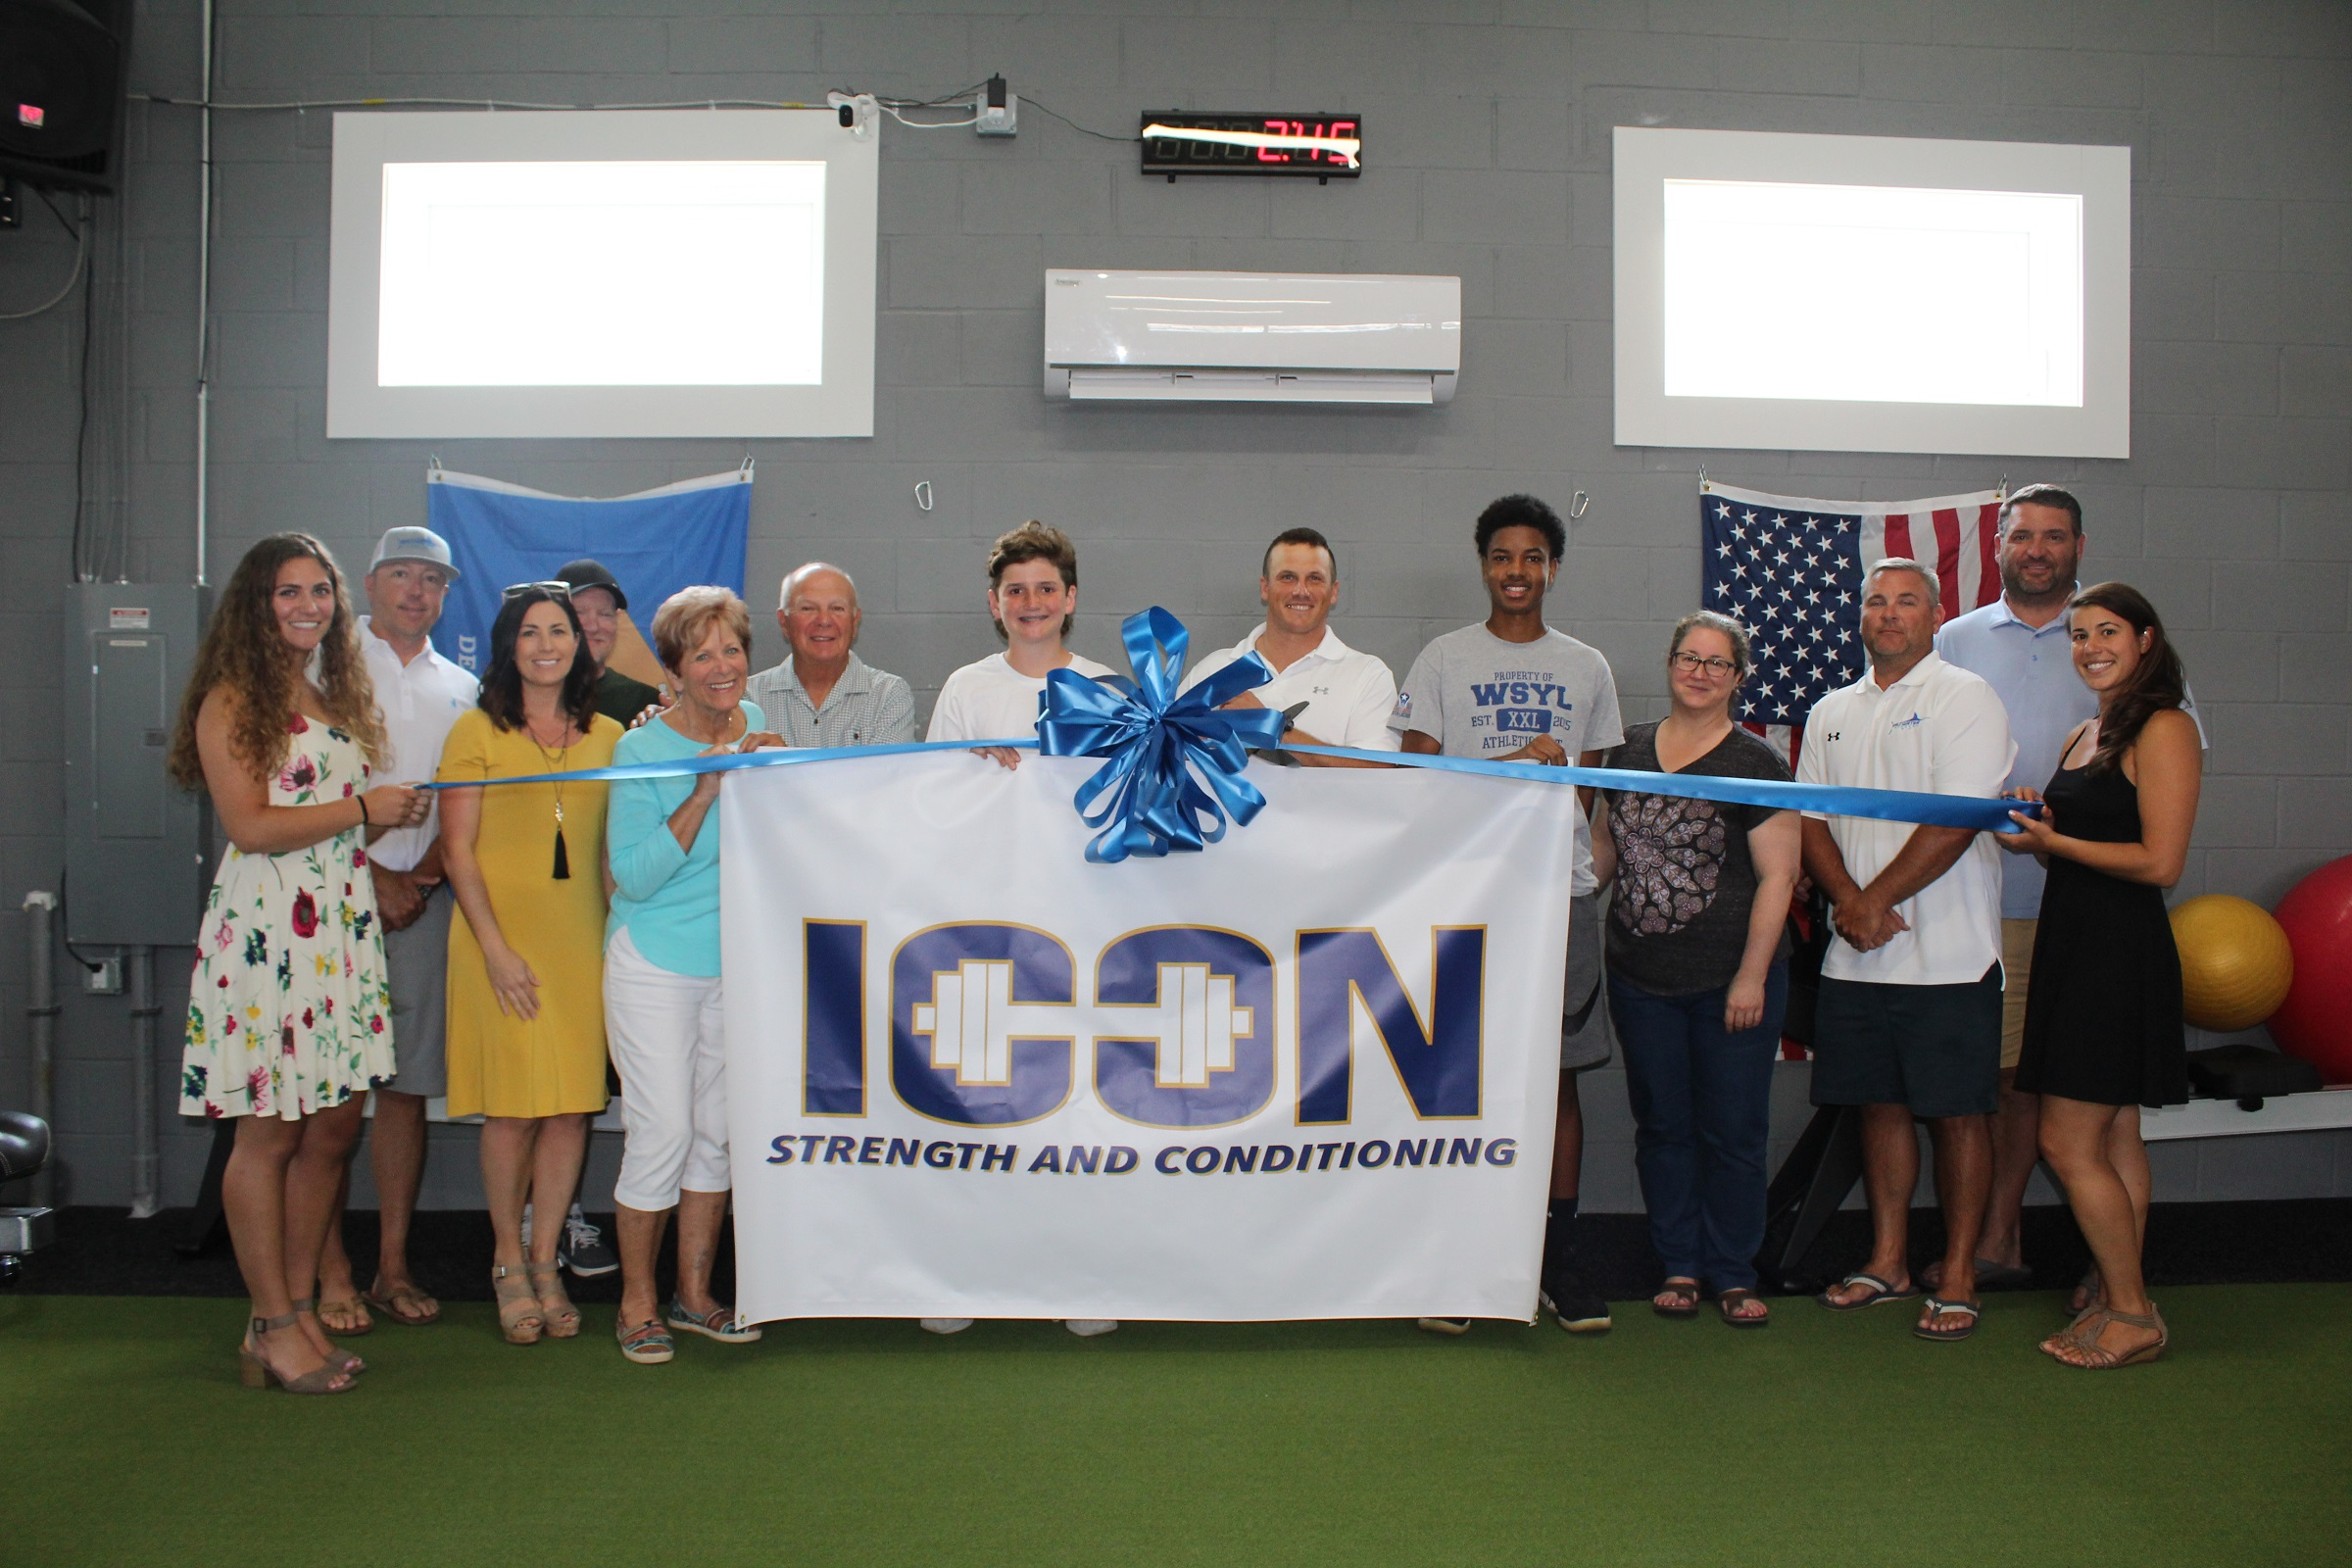 Icon Strength and Conditioning